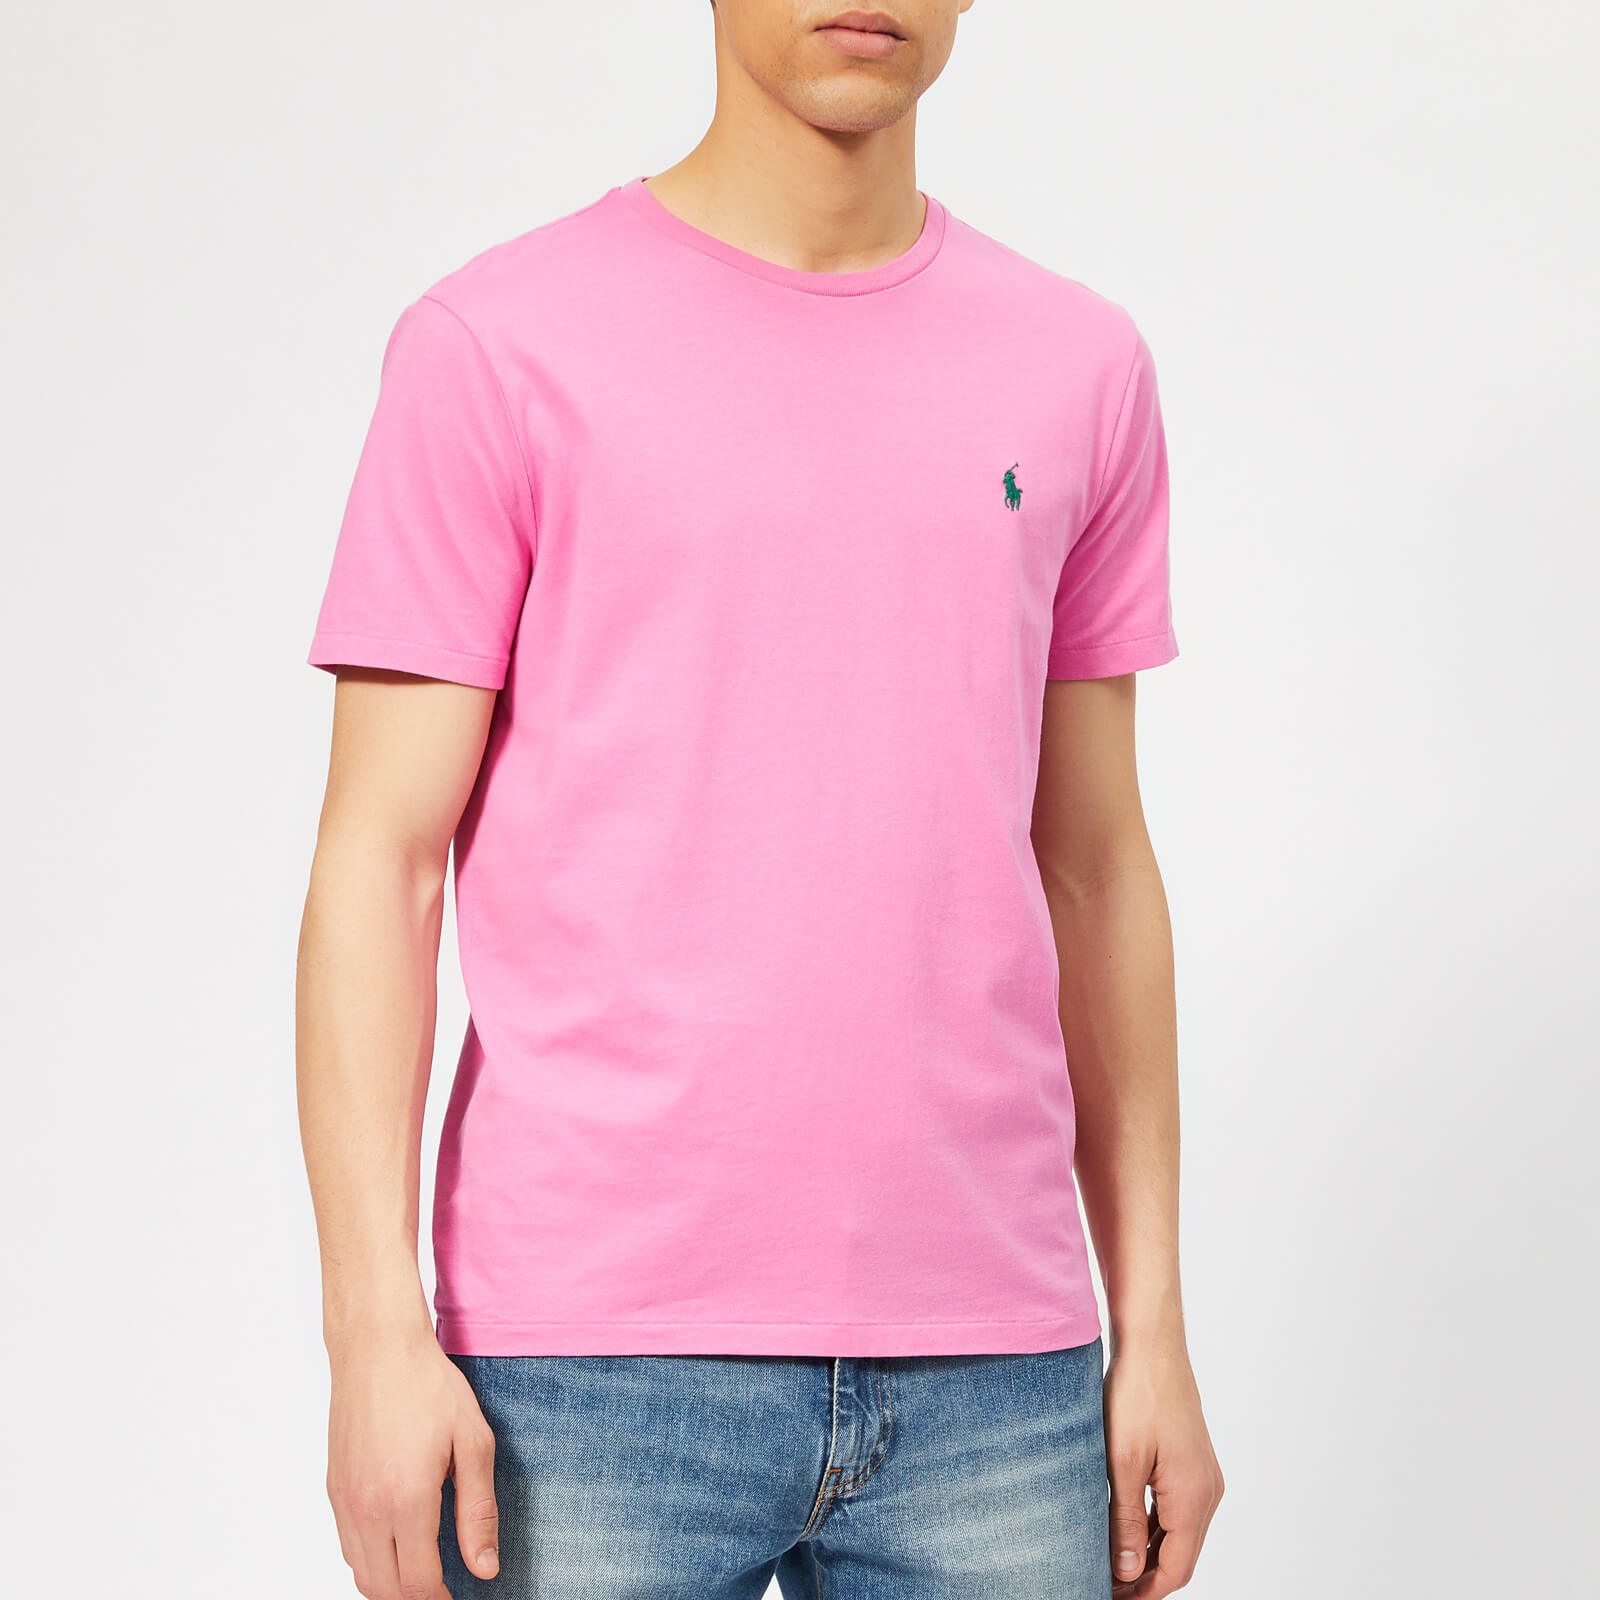 fe62e6db4 Polo Ralph Lauren Men's Basic T-Shirt - Maui Pink - Free UK Delivery over  £50